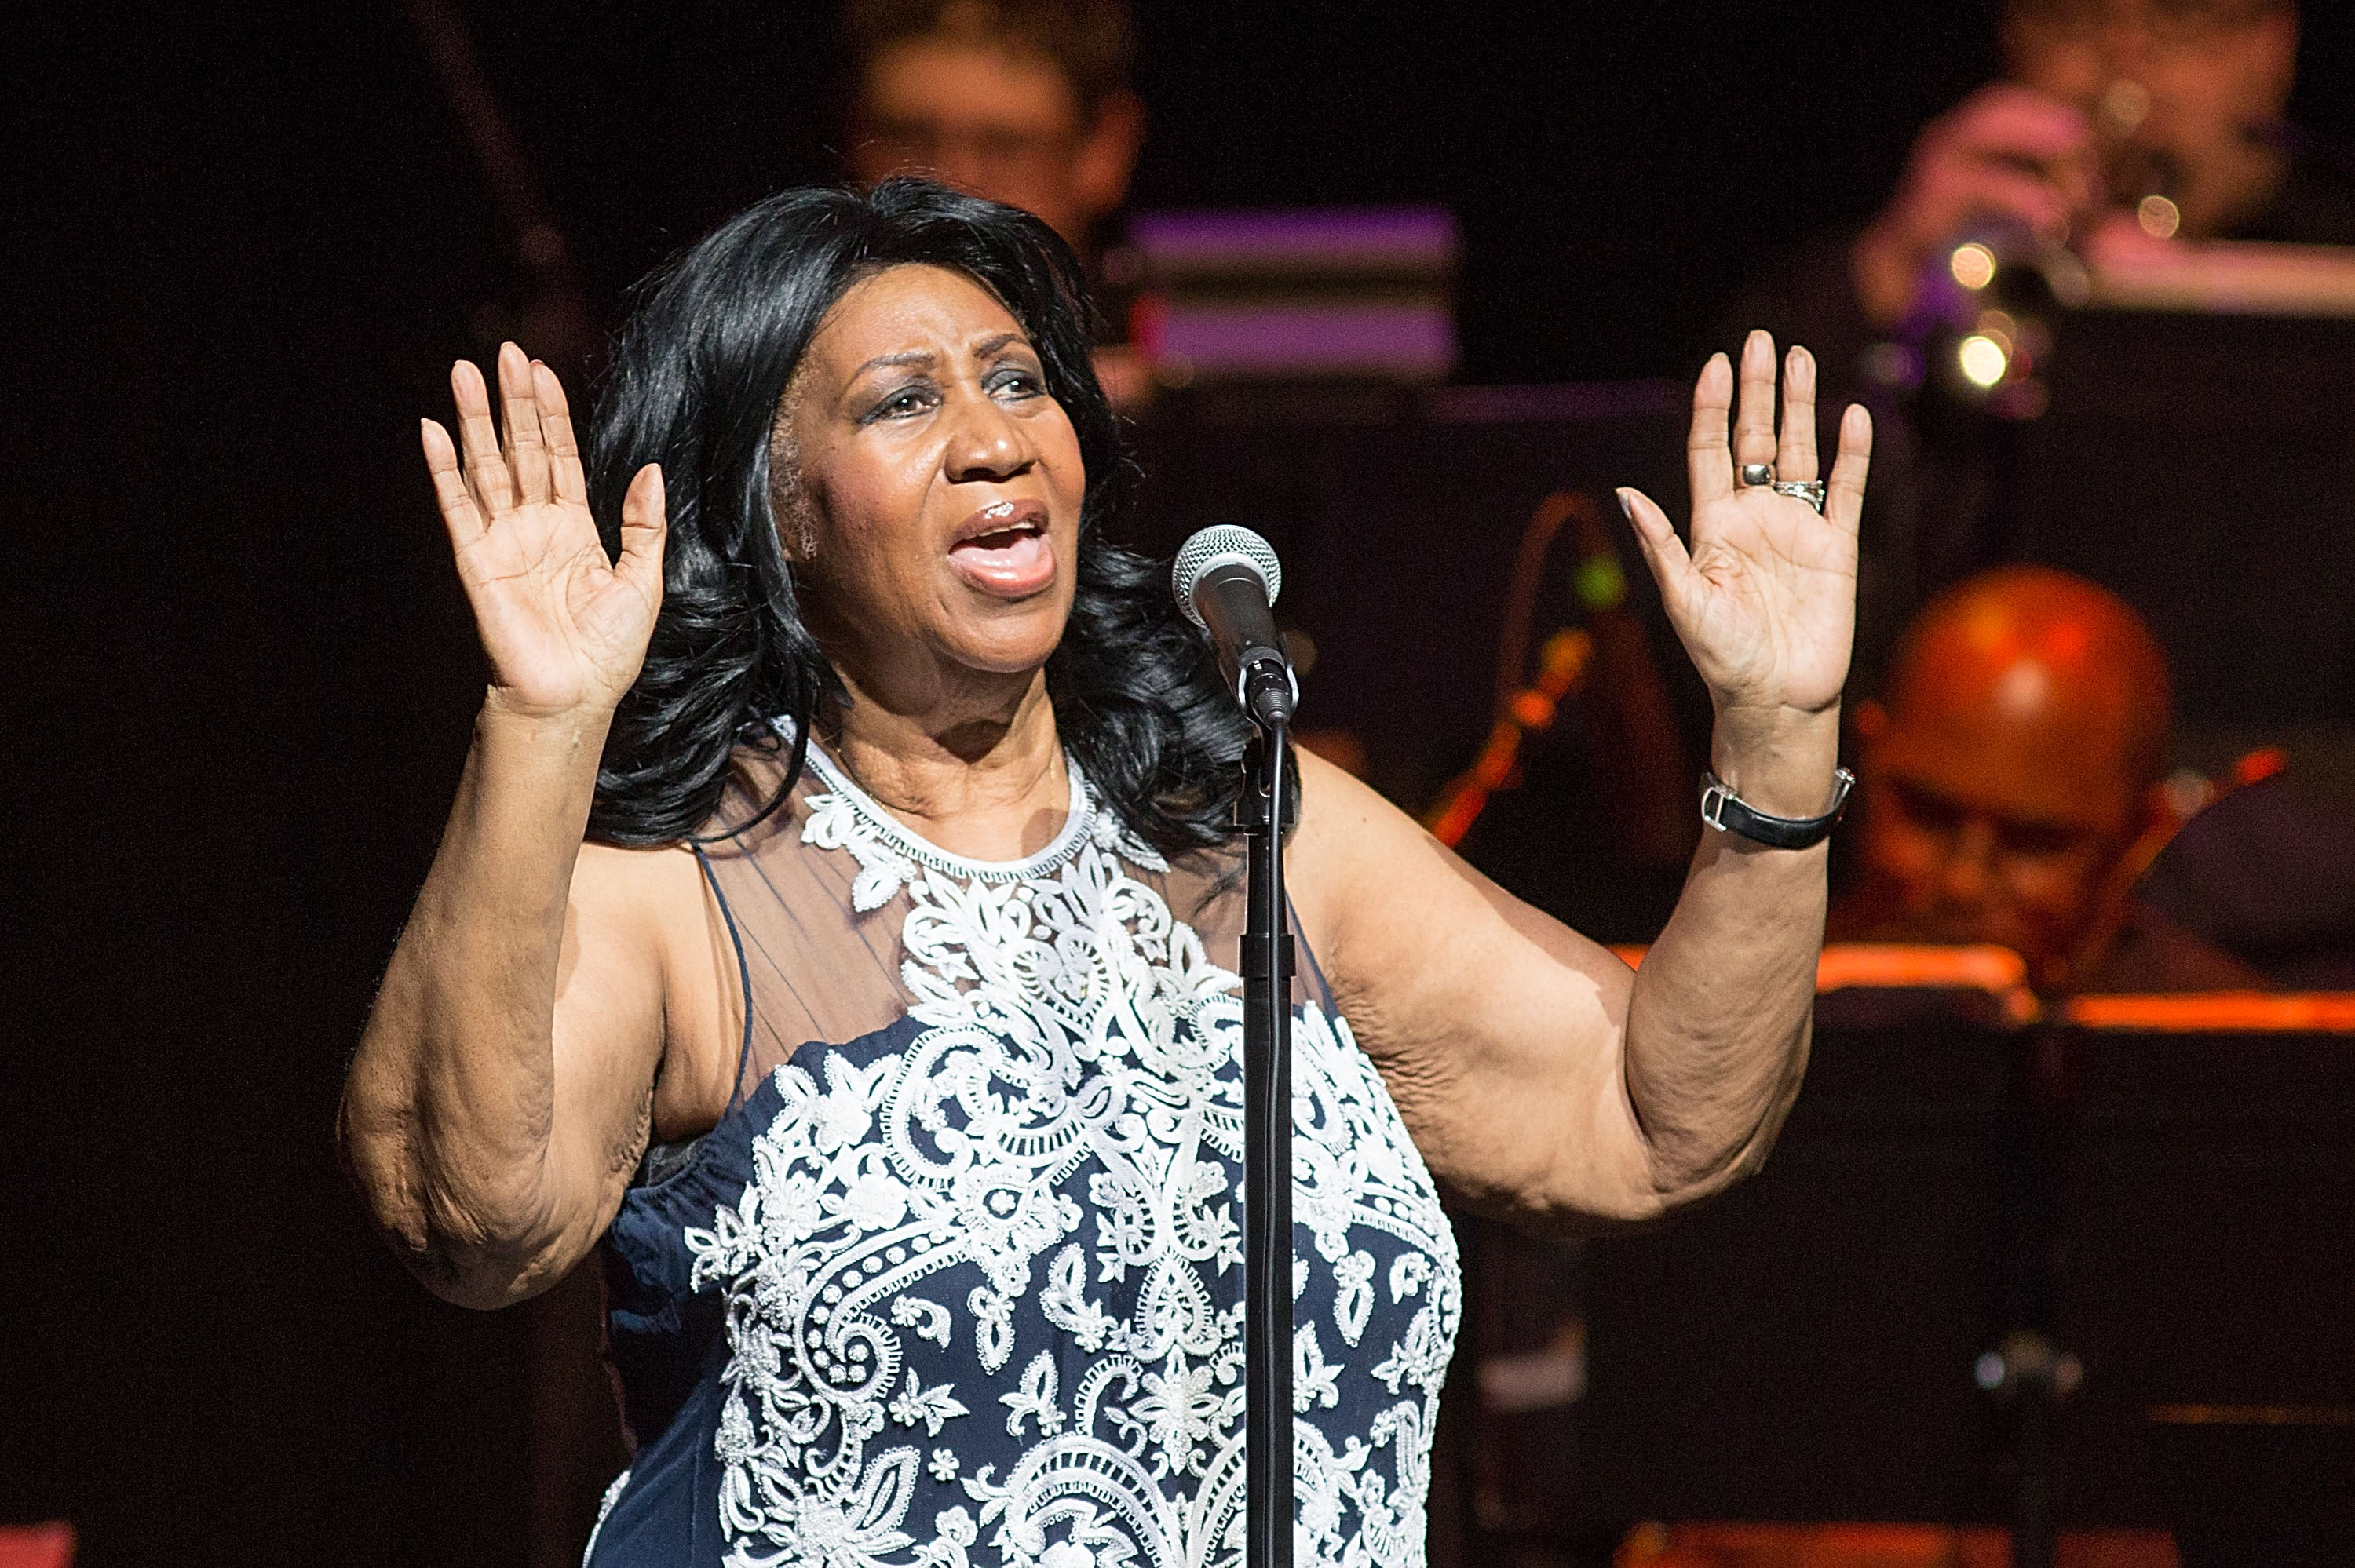 Singer Aretha Franklin performs in concert at ACL Live on September 3, 2014 in Austin, Texas.